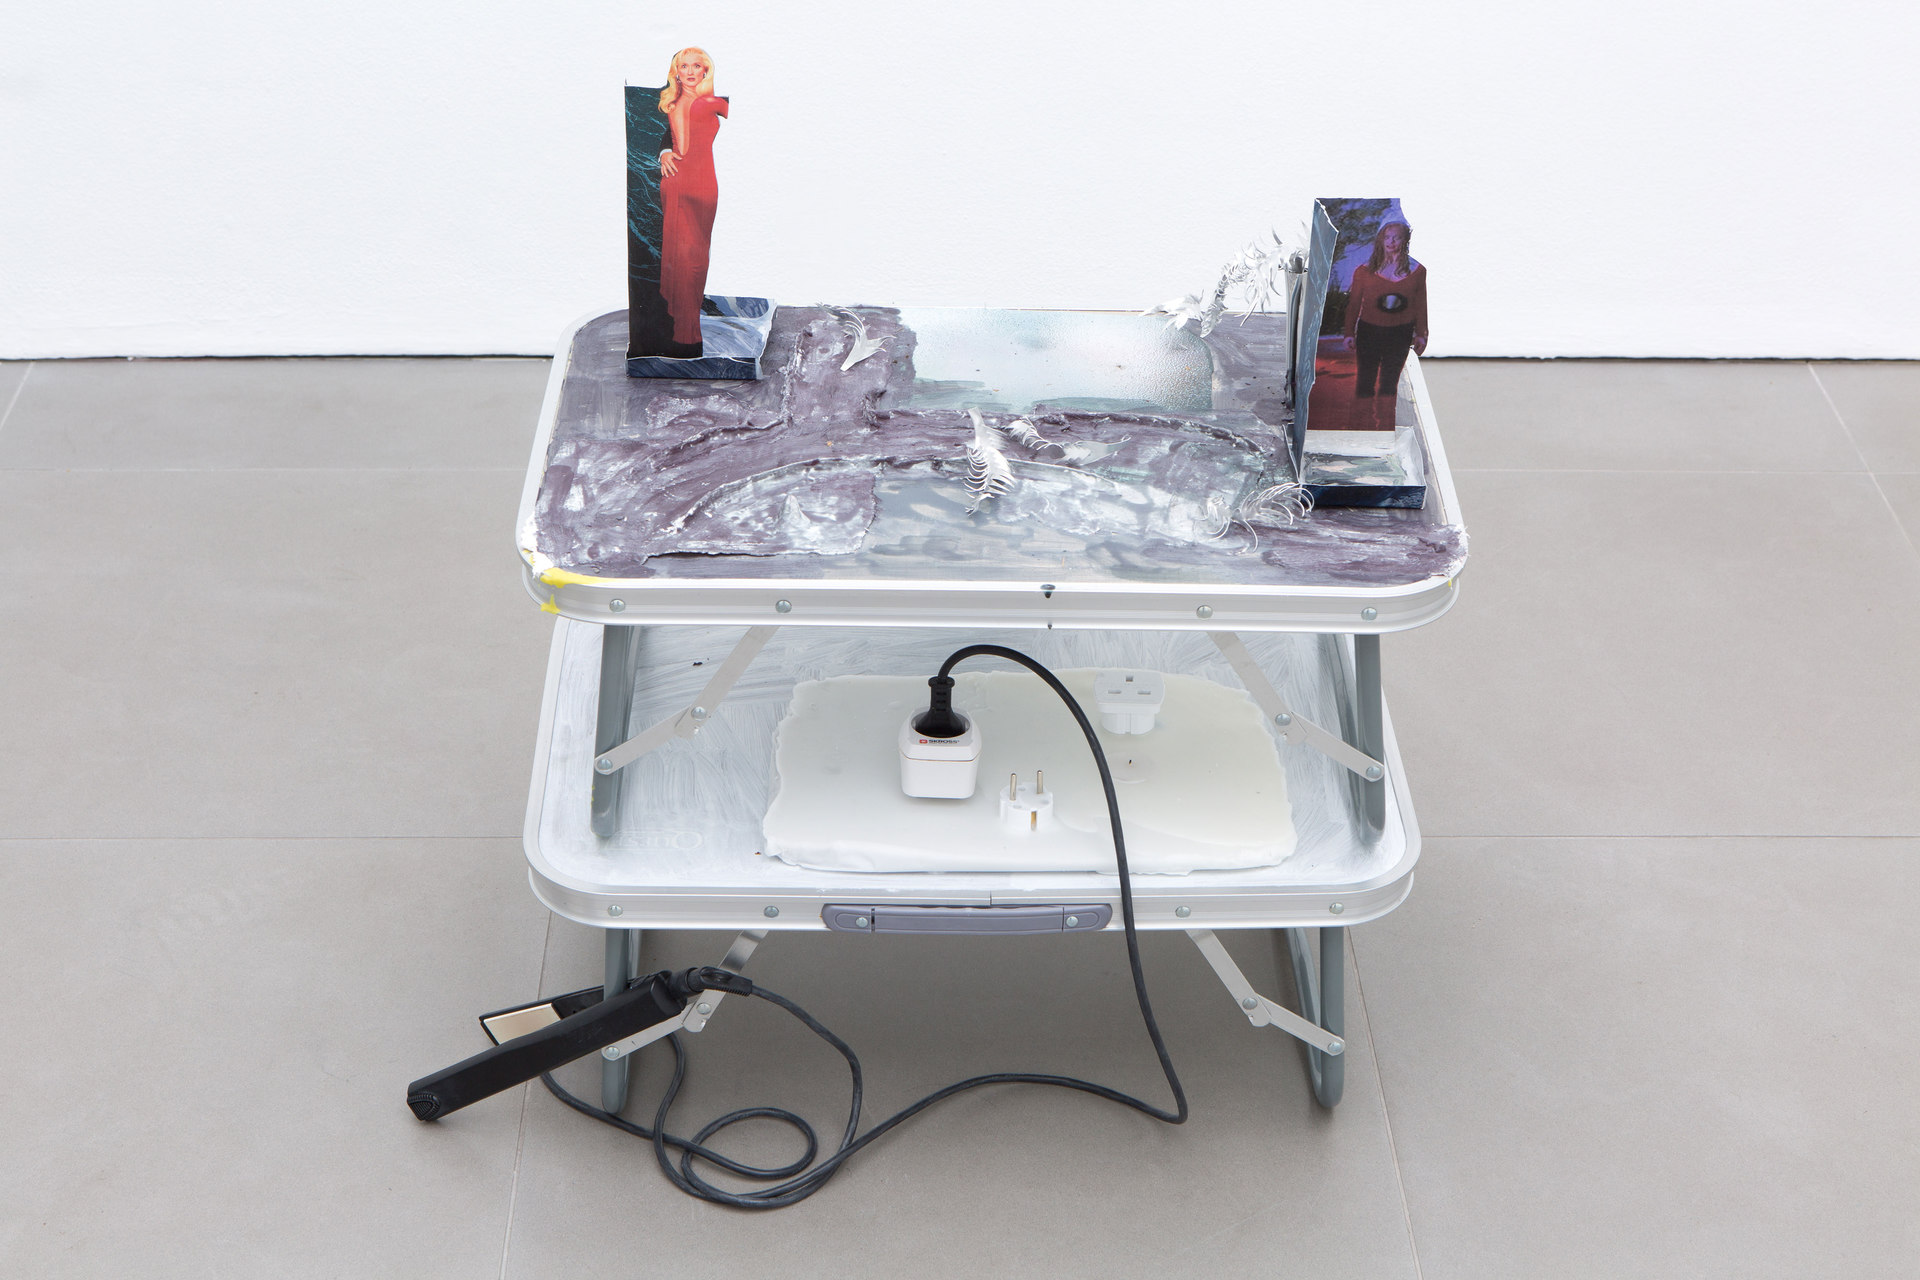 Kate Mackeson & Henrik Potter, 'landlords are not currently collecting rent in self-love', Kate Mackeson, Fugue state, 2016, Cell Project Space